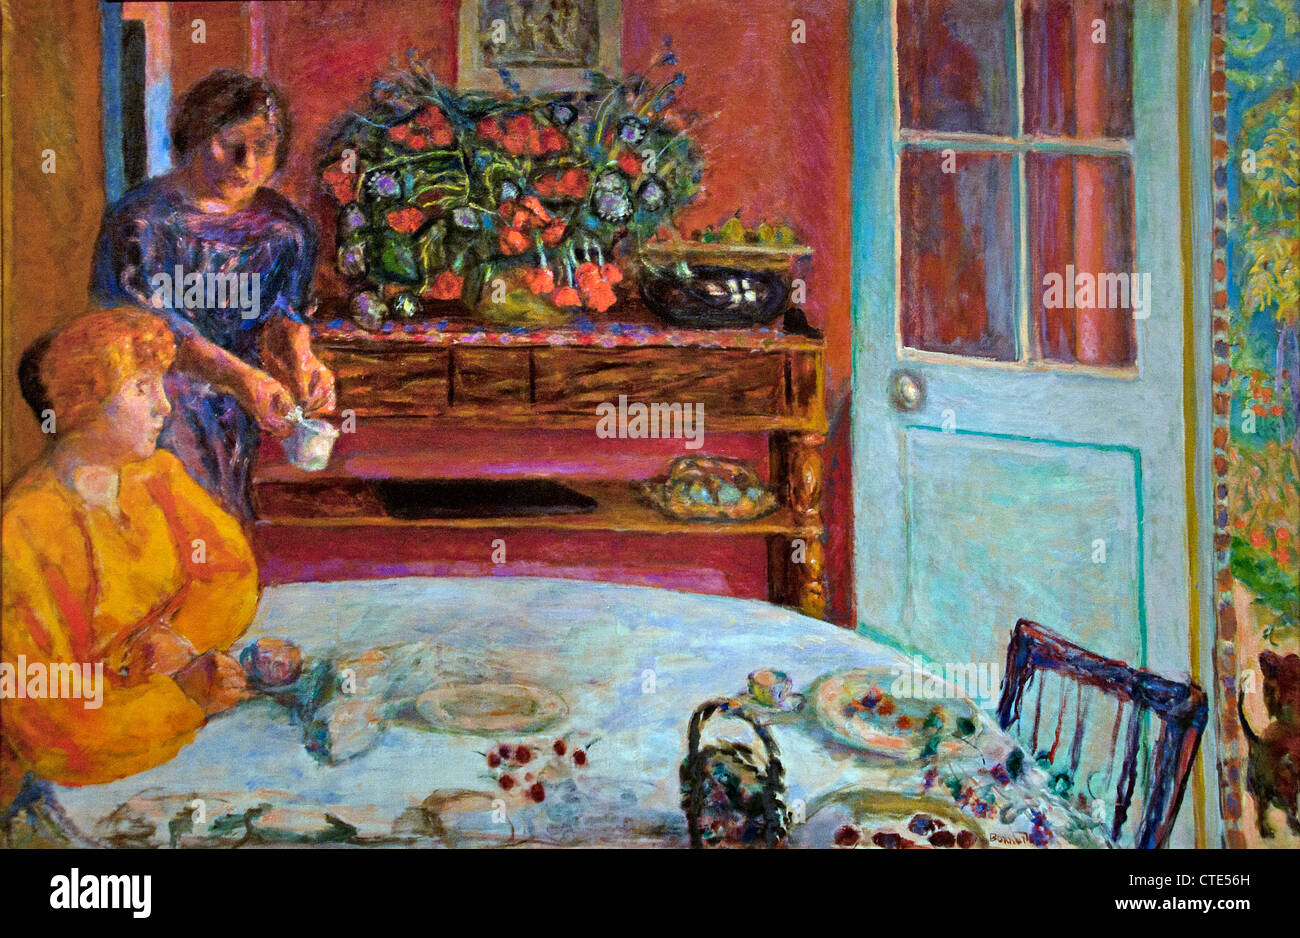 The Dining Room at Vernonnet 1916 Pierre Bonnard 1867 - 1947 France French - Stock Image